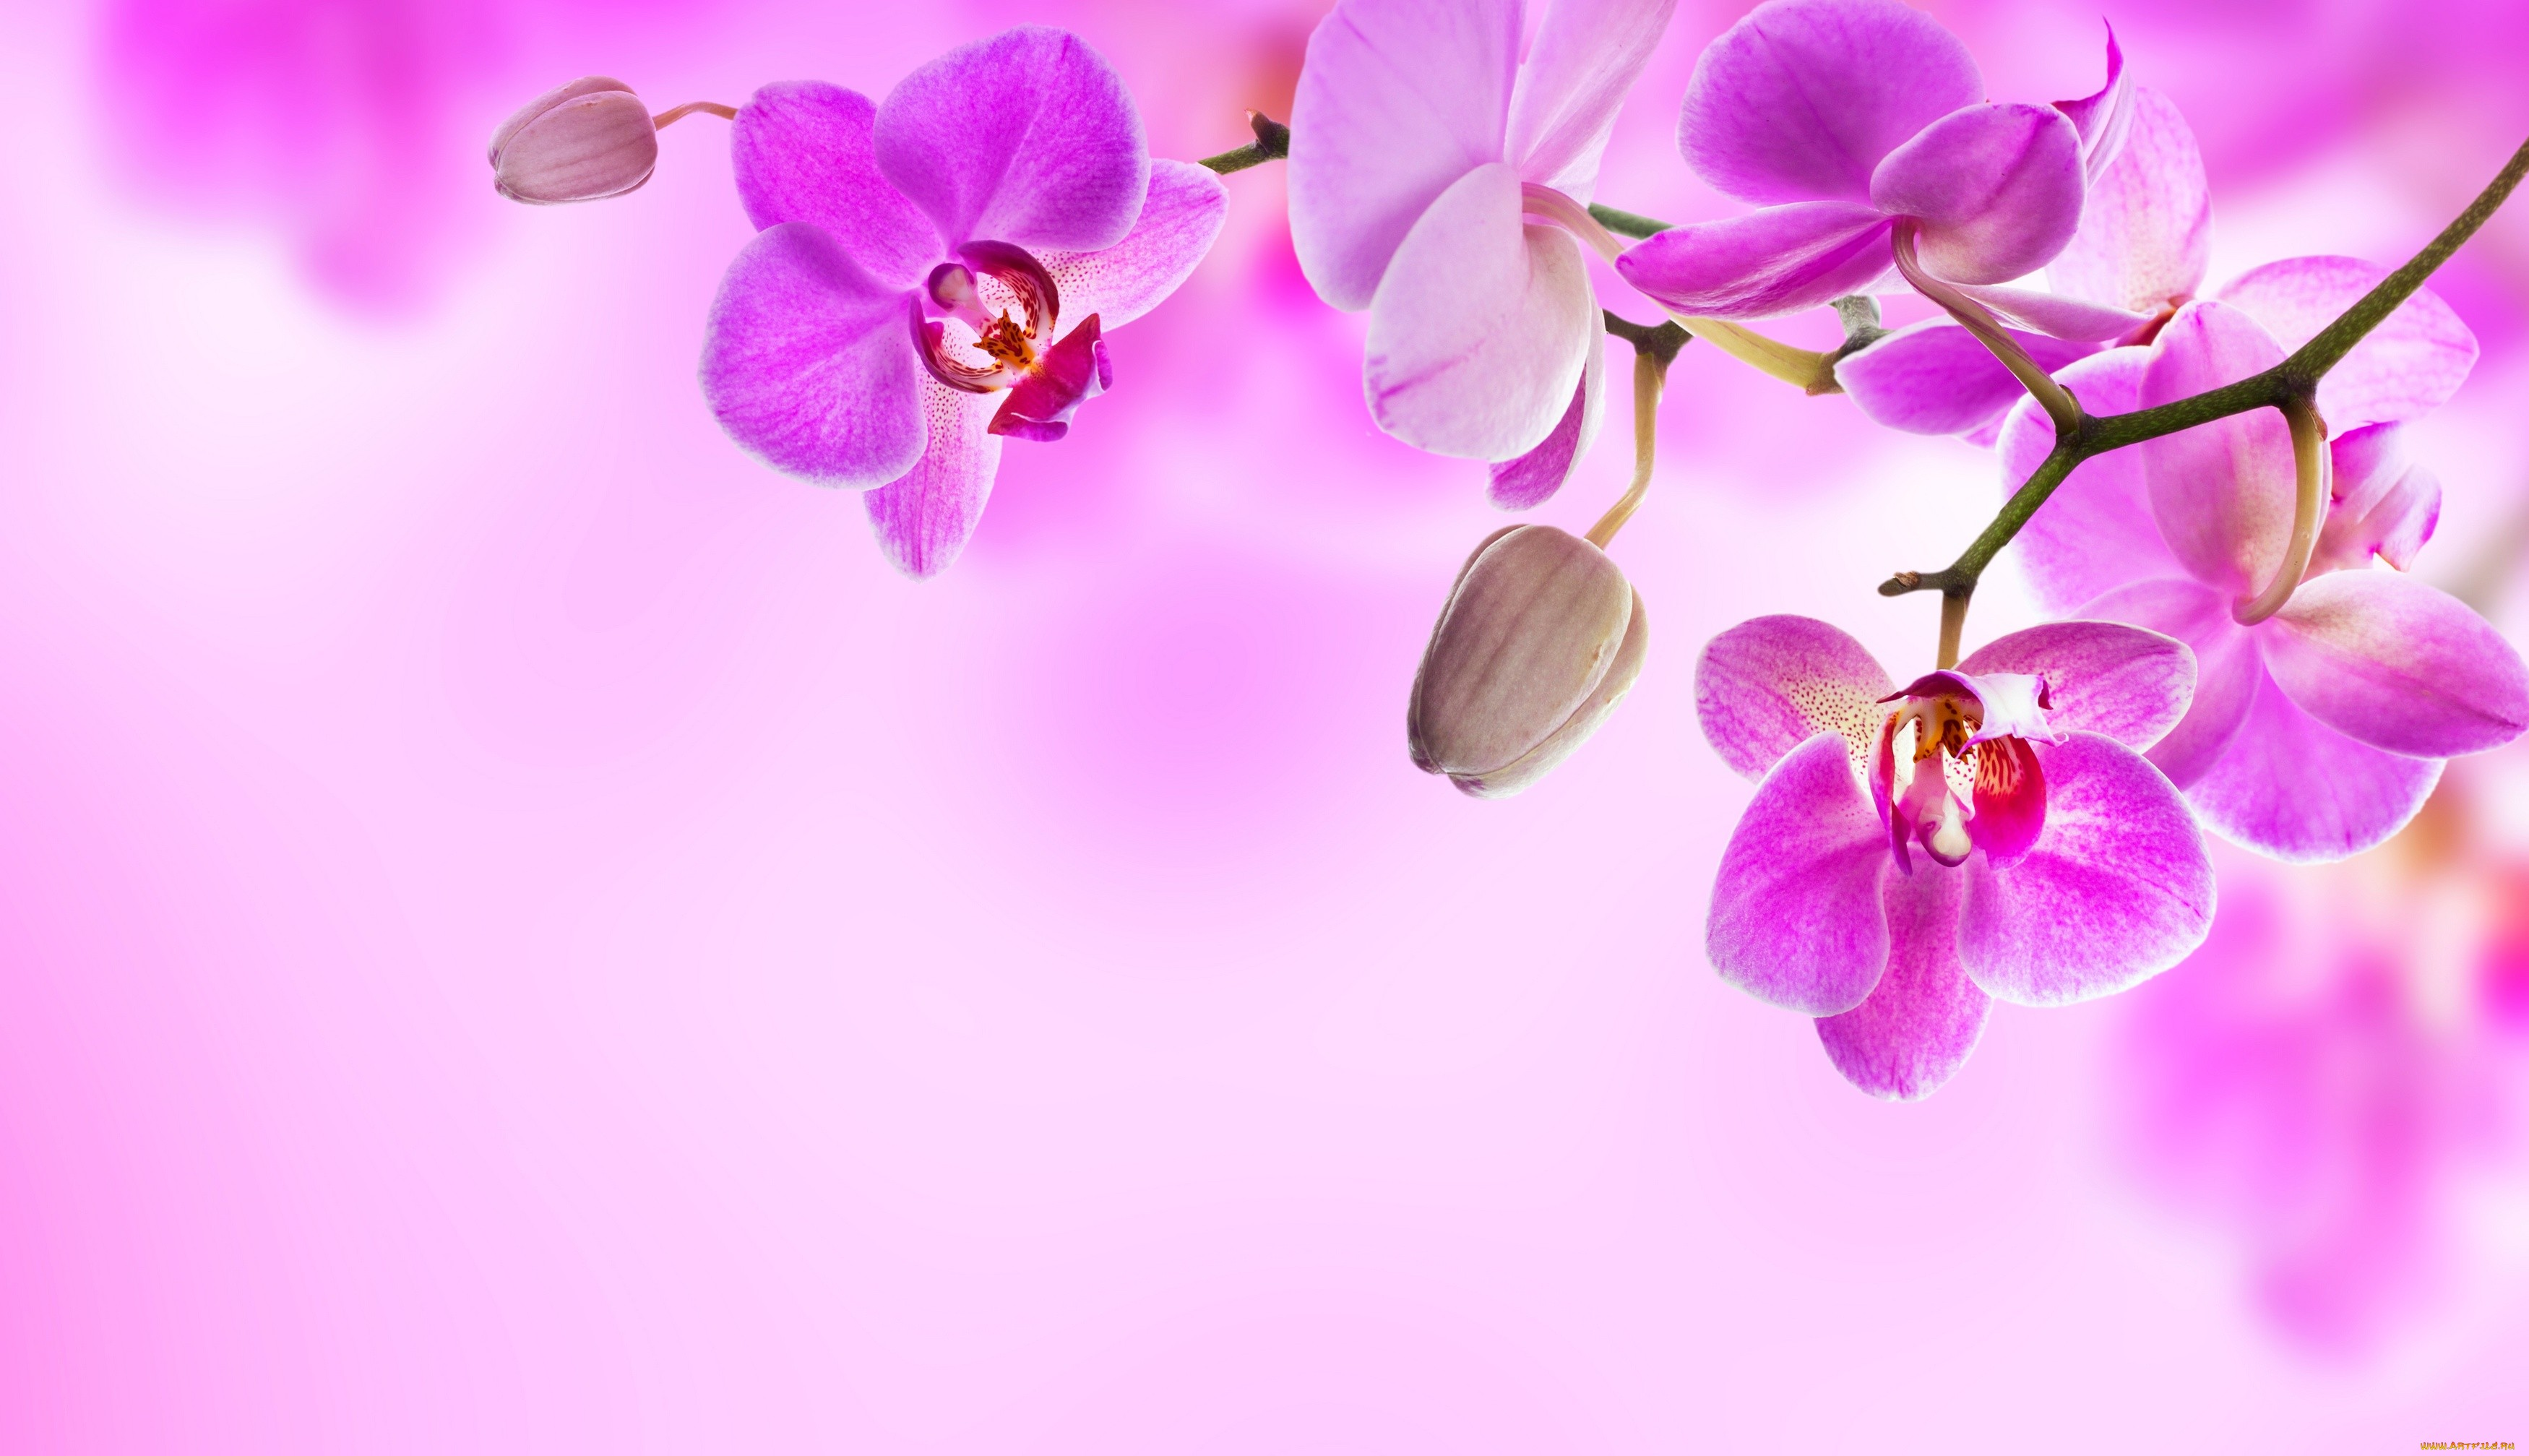 orchid wallpapers backgrounds images - photo #10